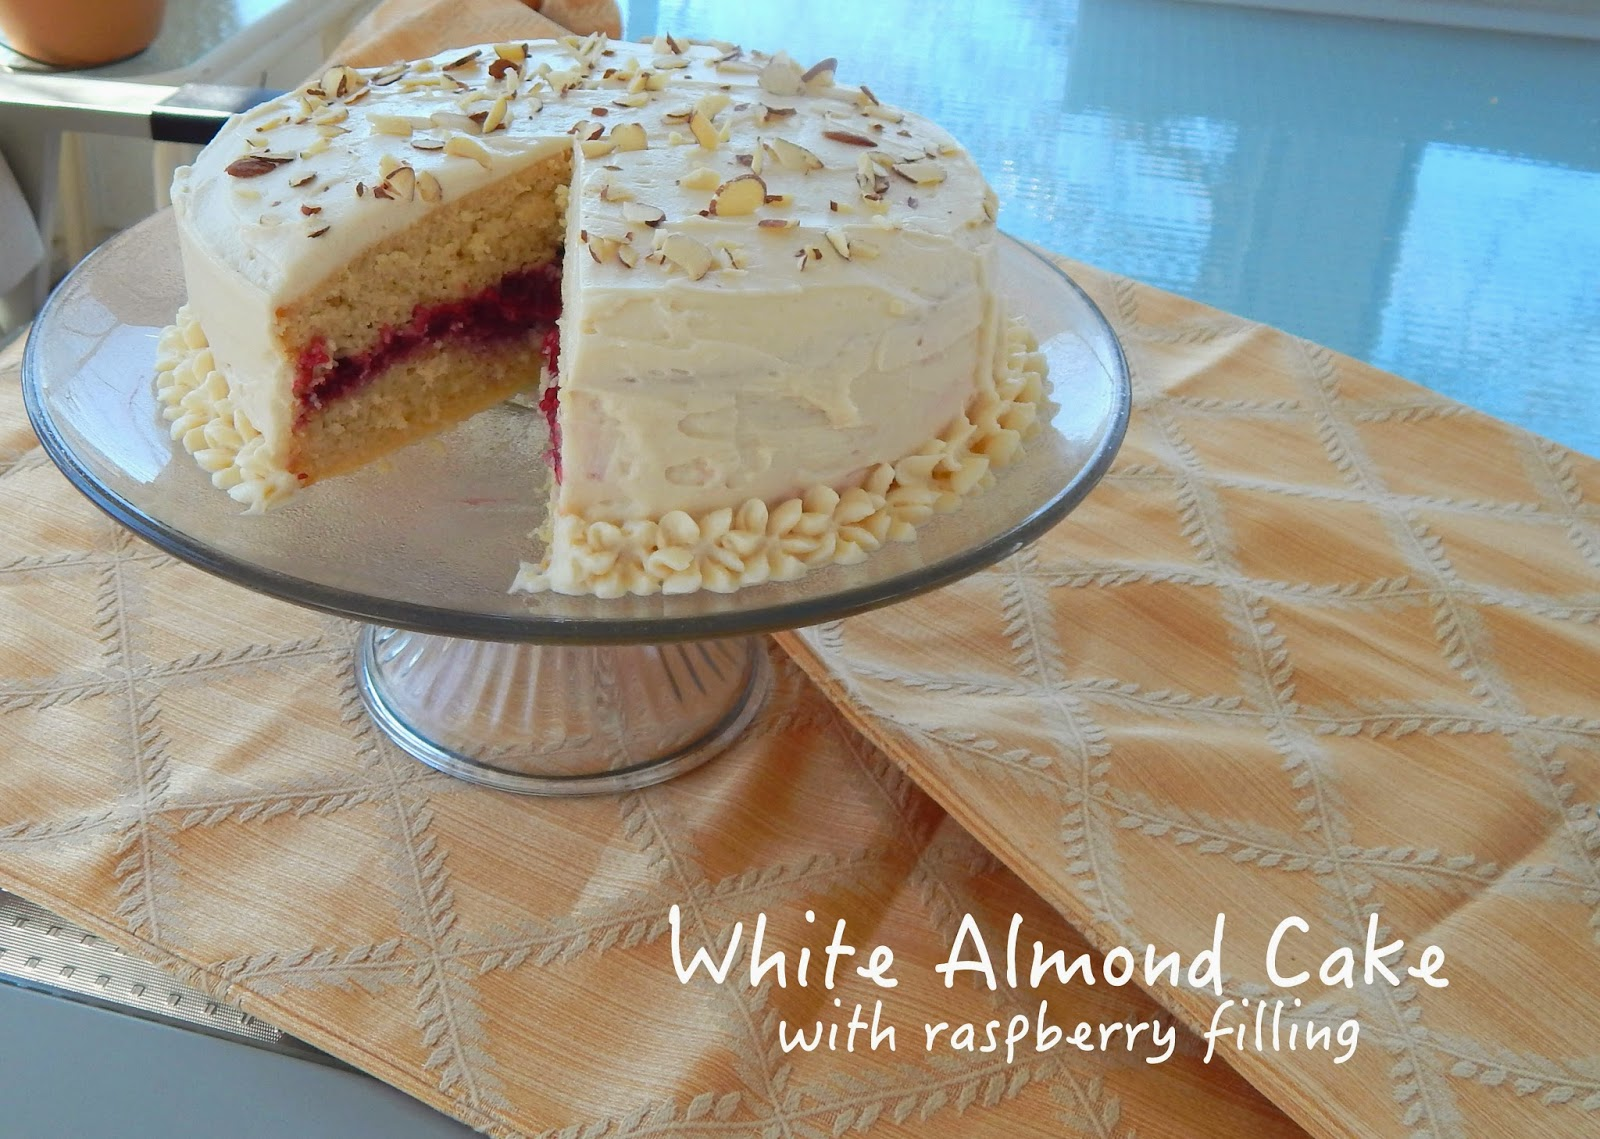 Mmm Low Carb Wedding Cake No But Seriously This Is Dangerously Close Its Got That Familiar Mixture Of The Flavors Almond And Raspberry